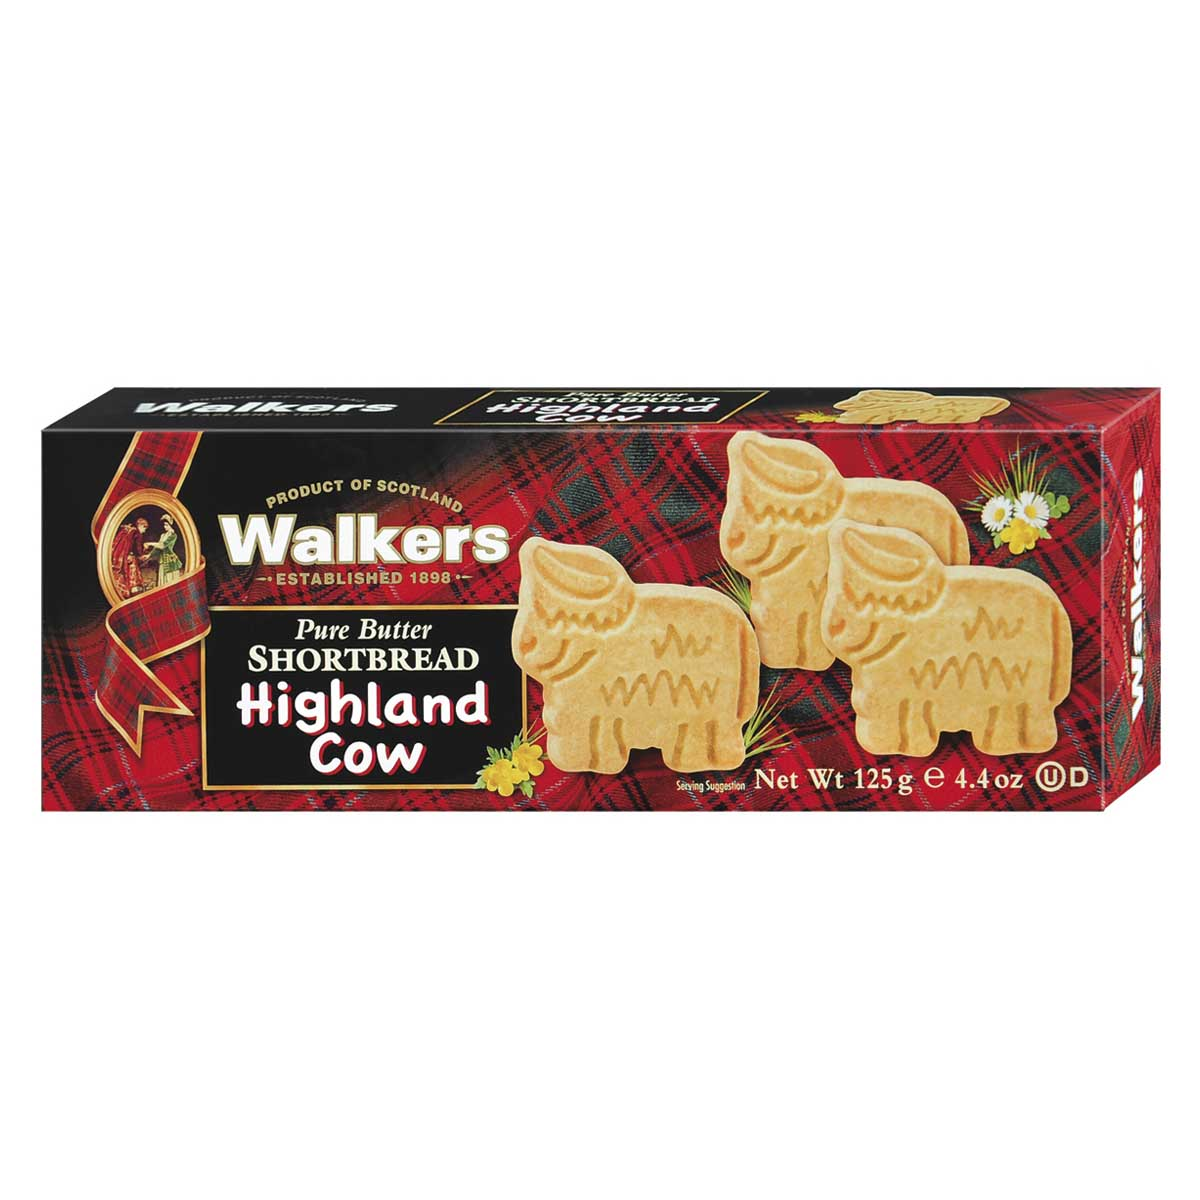 "Top Food Feinkost - Walkers Shortbread Ltd. ""Highland Cow Shapes"" Shortbread 125g. Schottisches Buttergebäck in Form der berühmten Highland Cows"